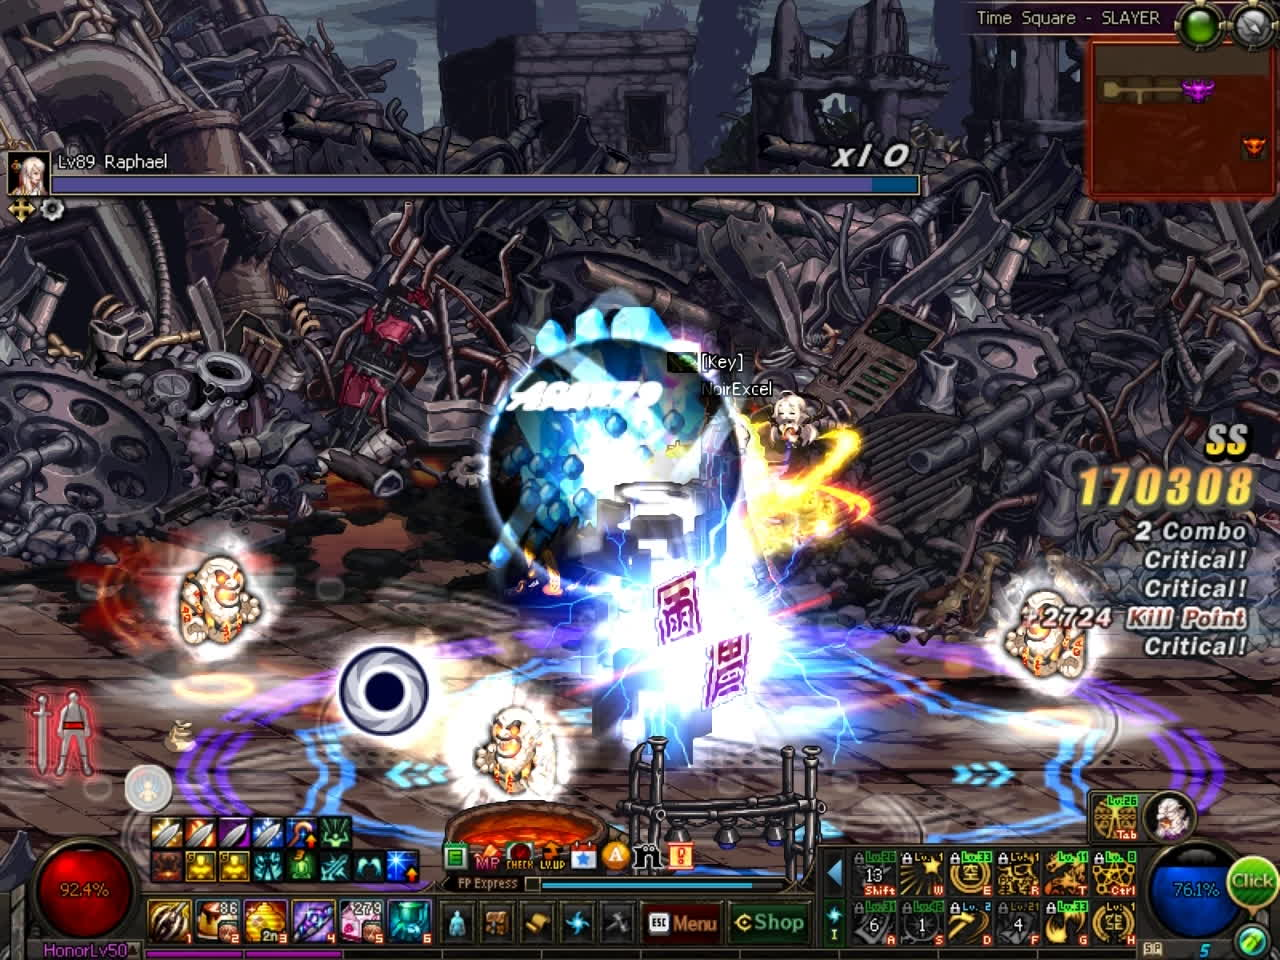 60fps, dfo, mmorpg, DFO Hell Mode Vol.78 GIFs